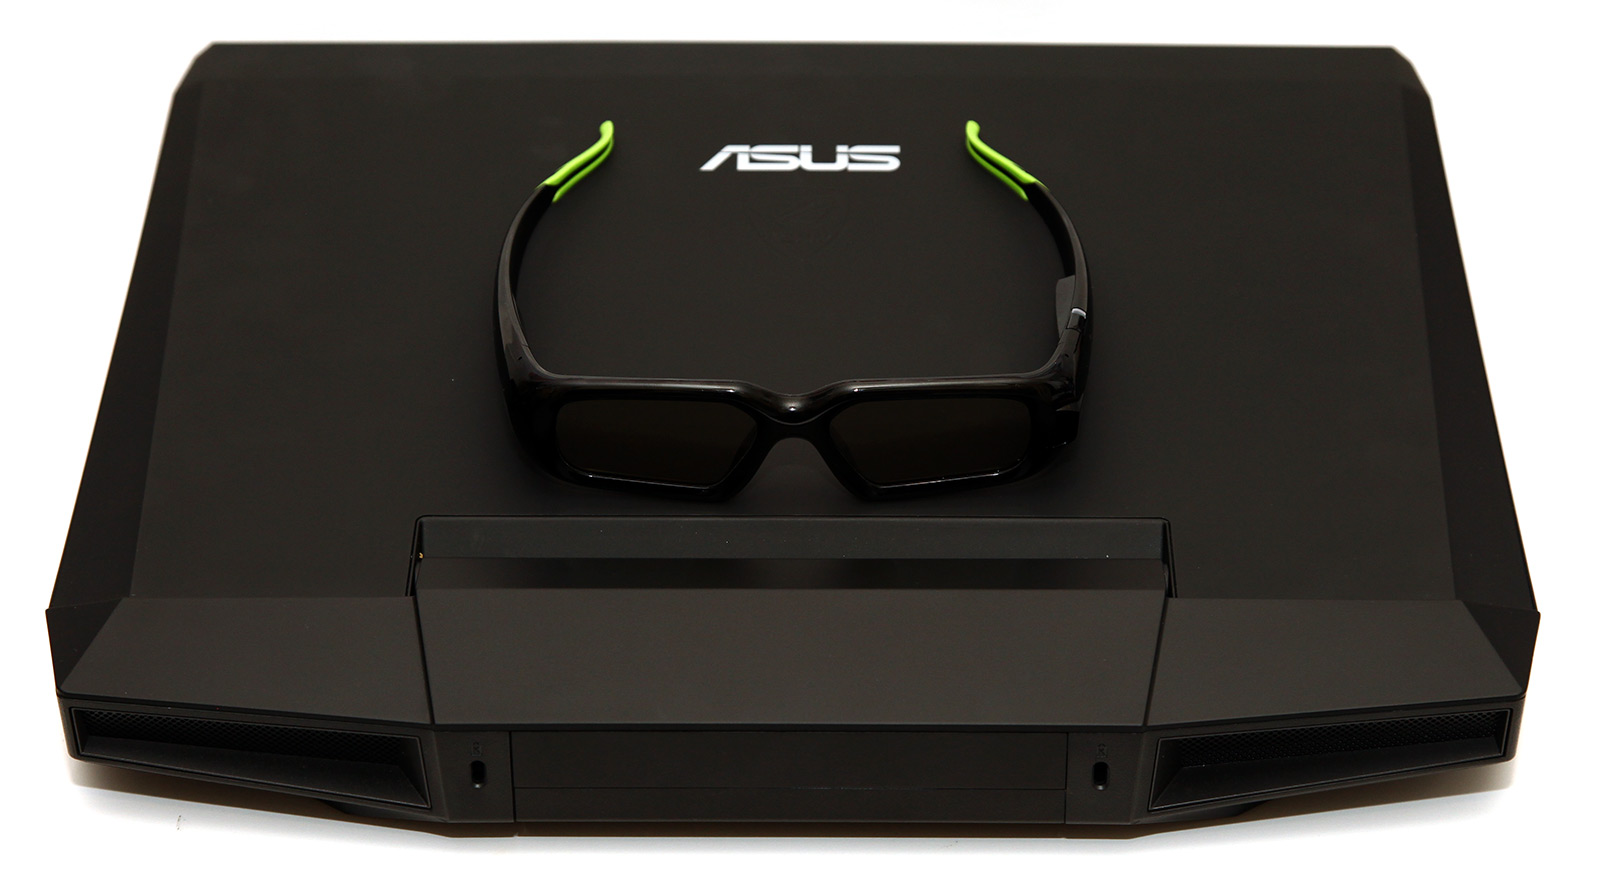 ASUS G53SX NOTEBOOK NVIDIA STEREOSCOPIC 3D DRIVERS FOR WINDOWS 10